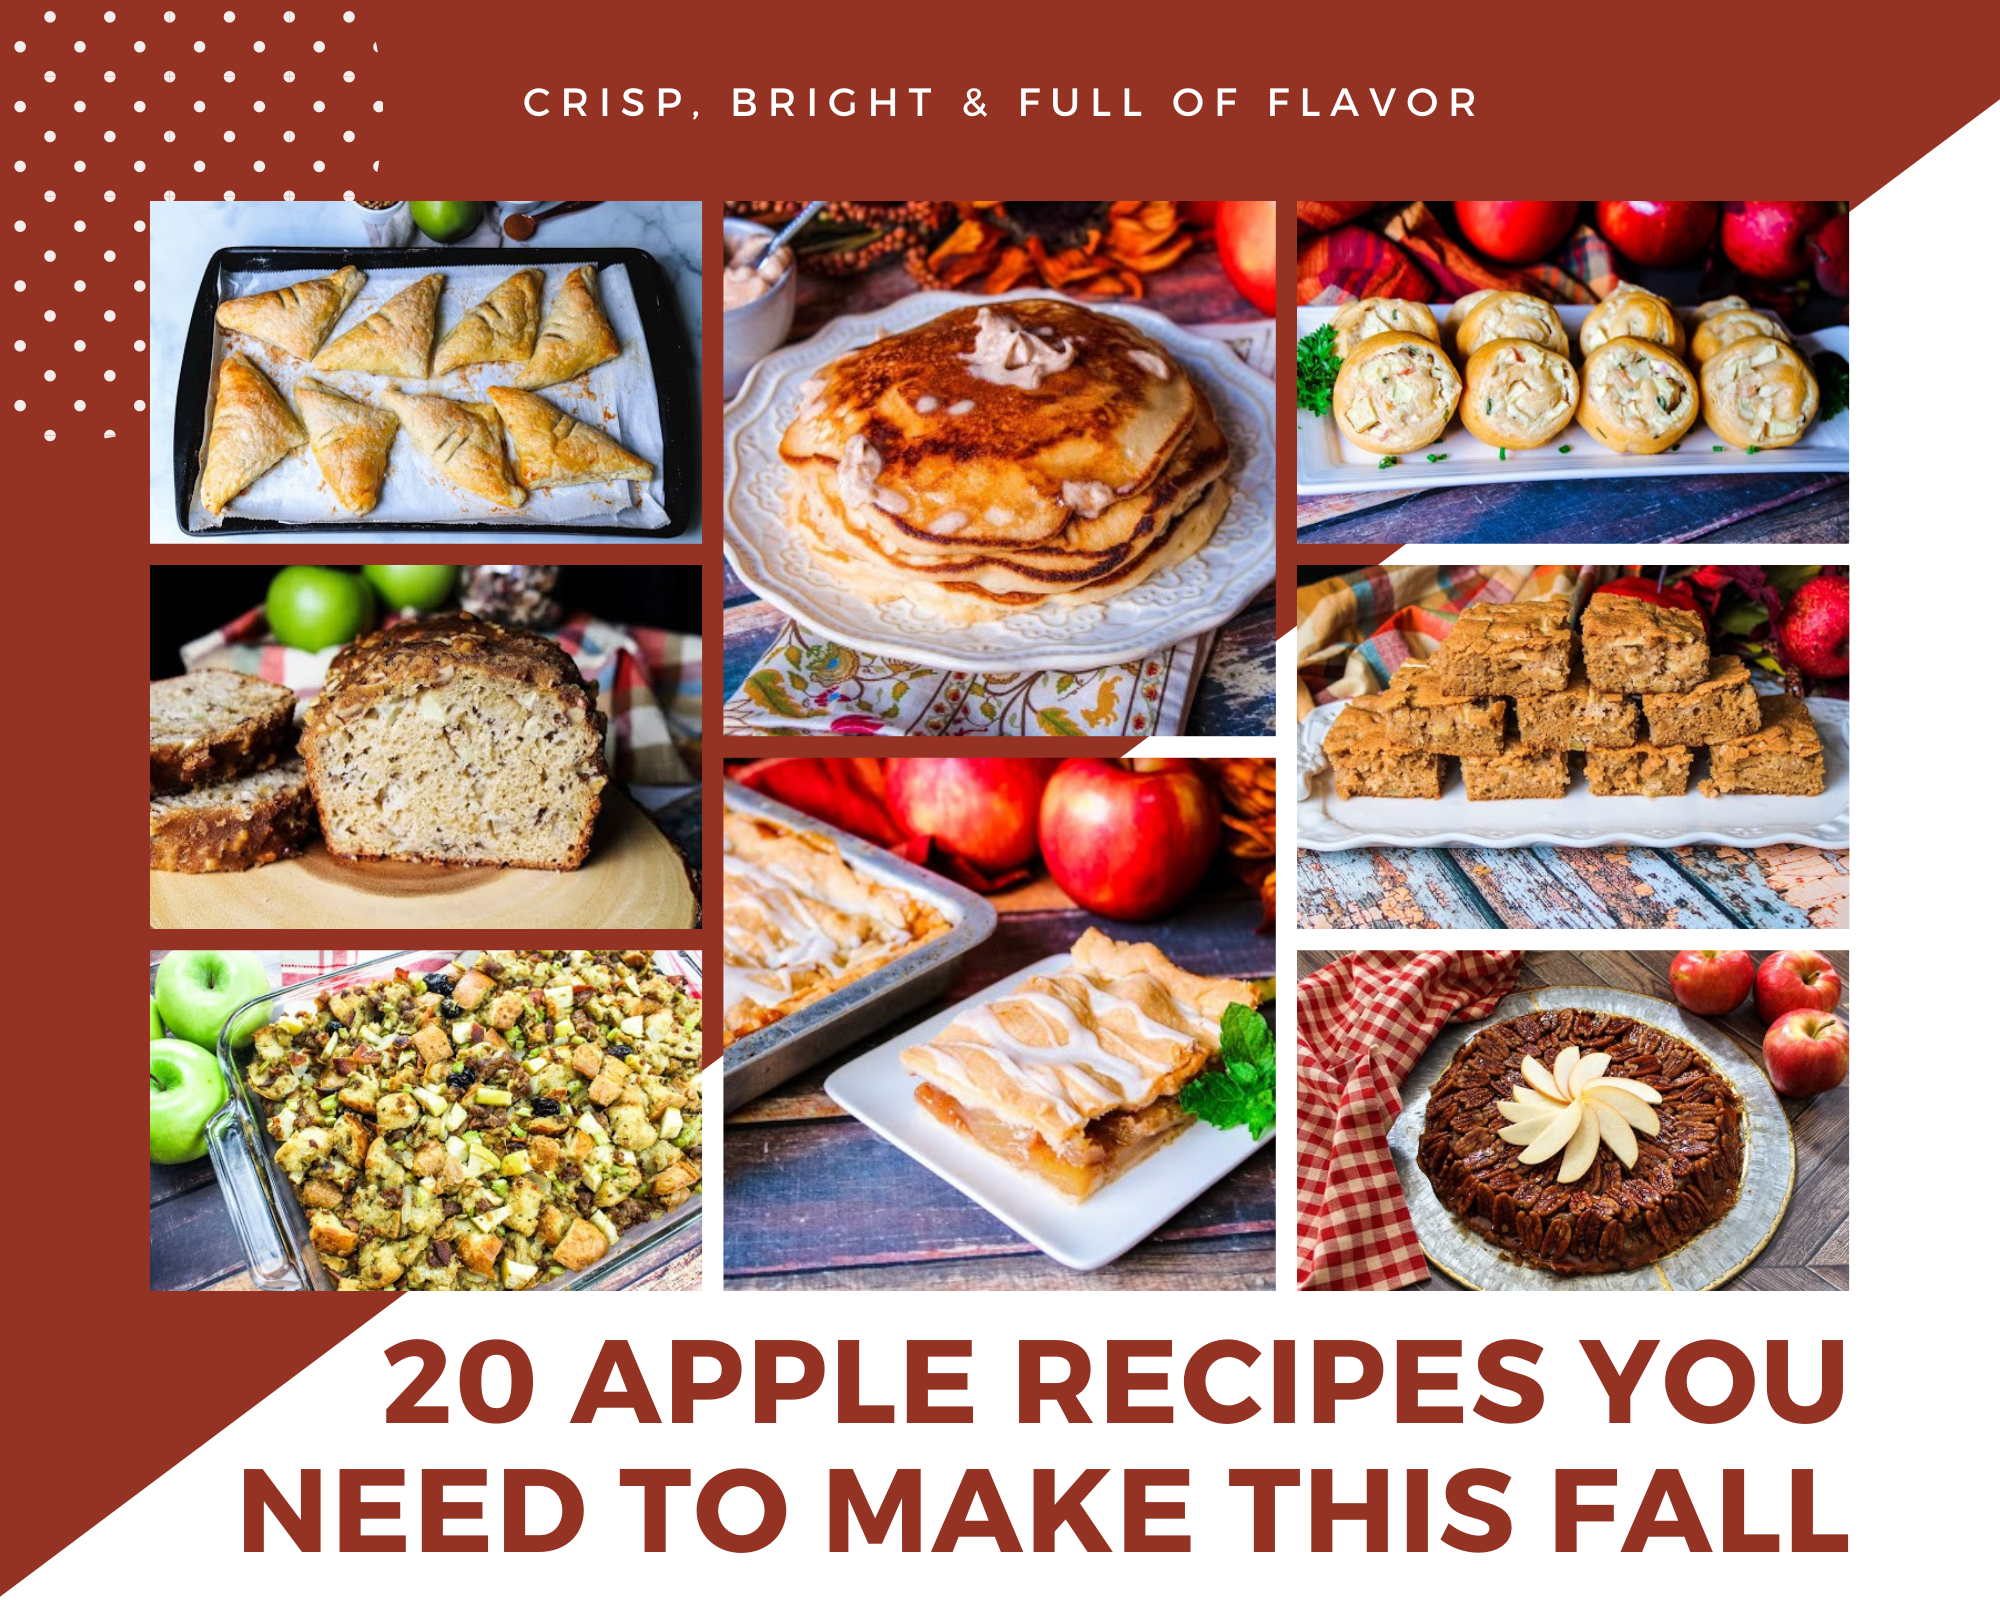 apple bread, apple pancakes, apple stuffing and more apple recipes